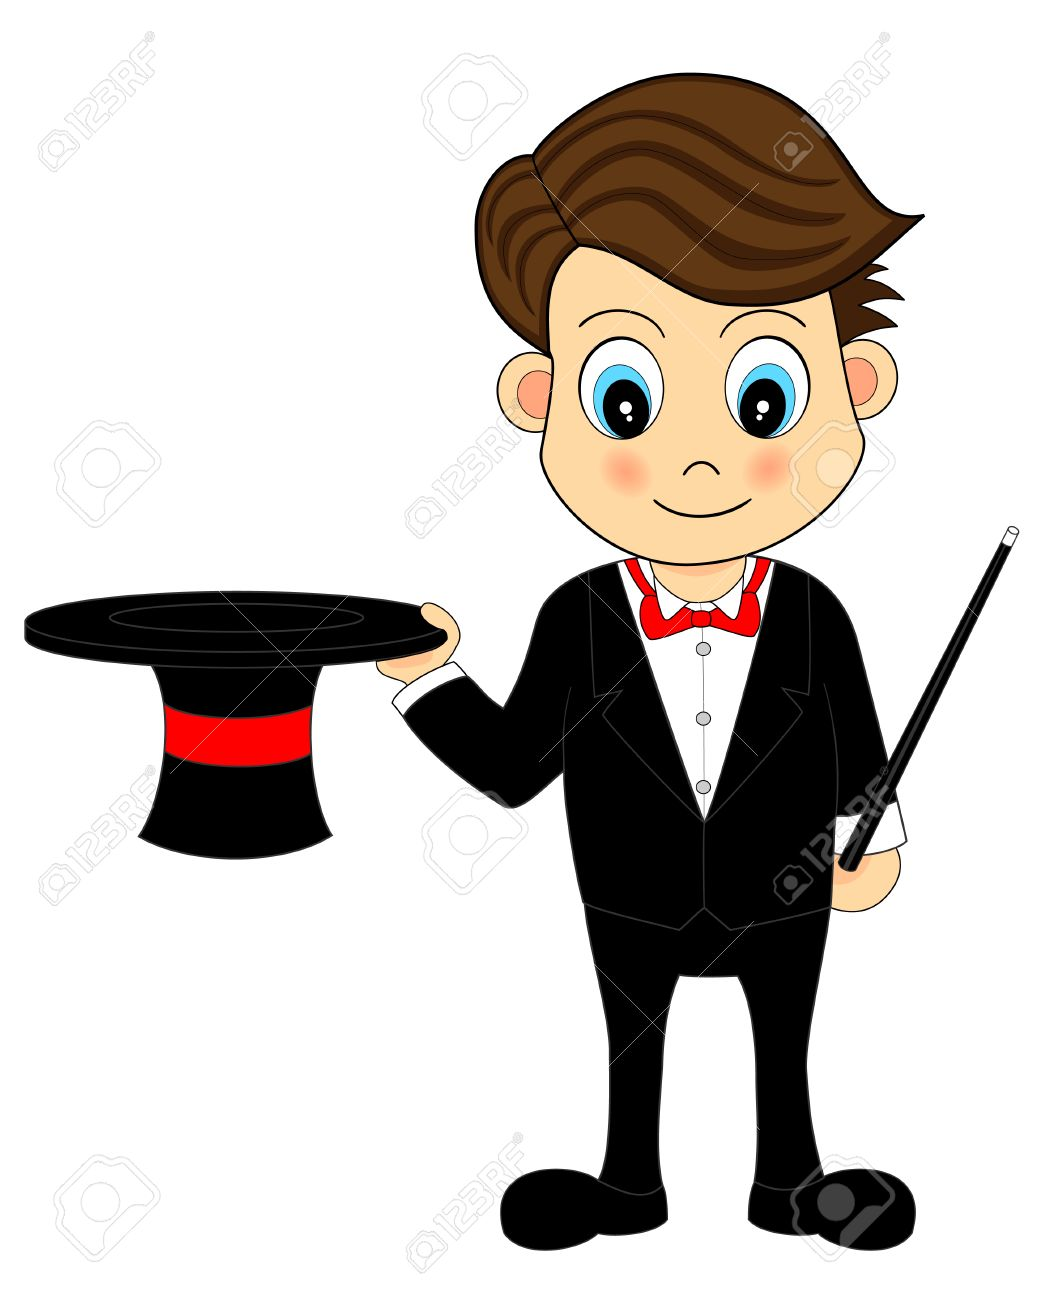 Cute Cartoon Magician With Hat and Wand - 4997835